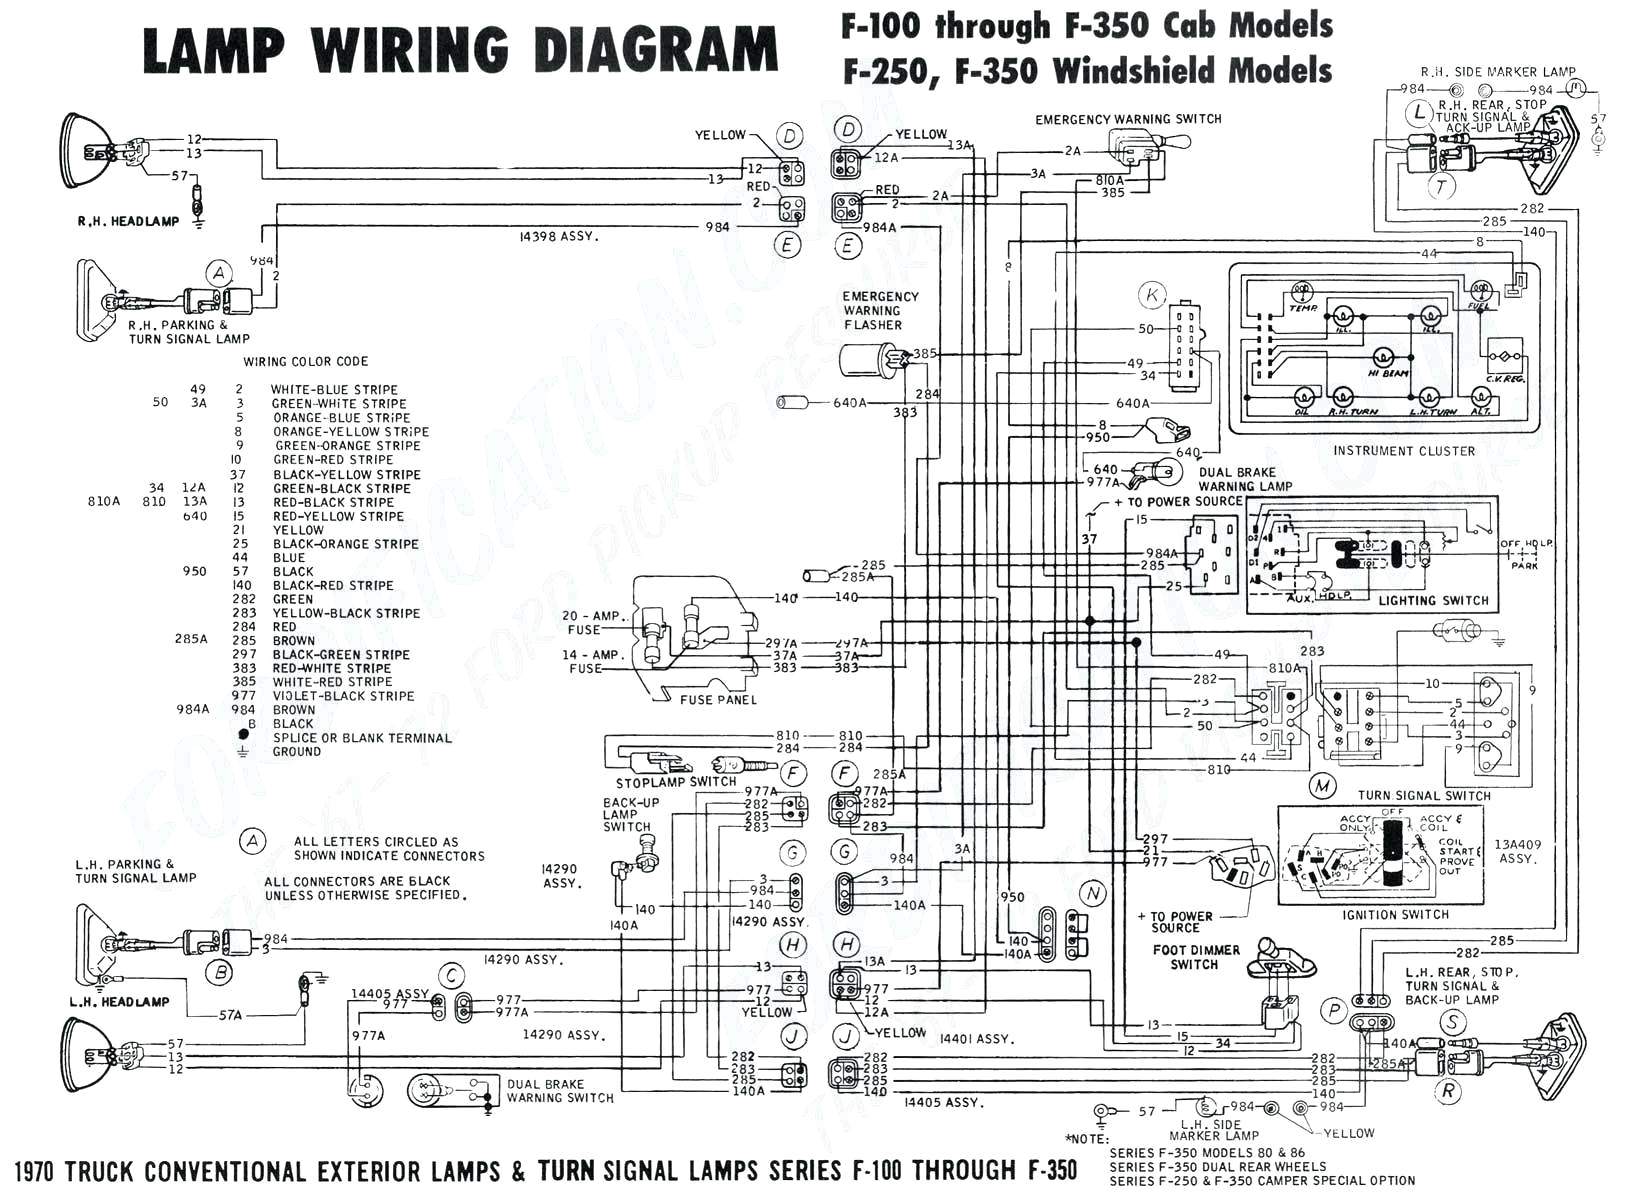 Dodge Truck Trailer Wiring Diagram from autocardesign.org